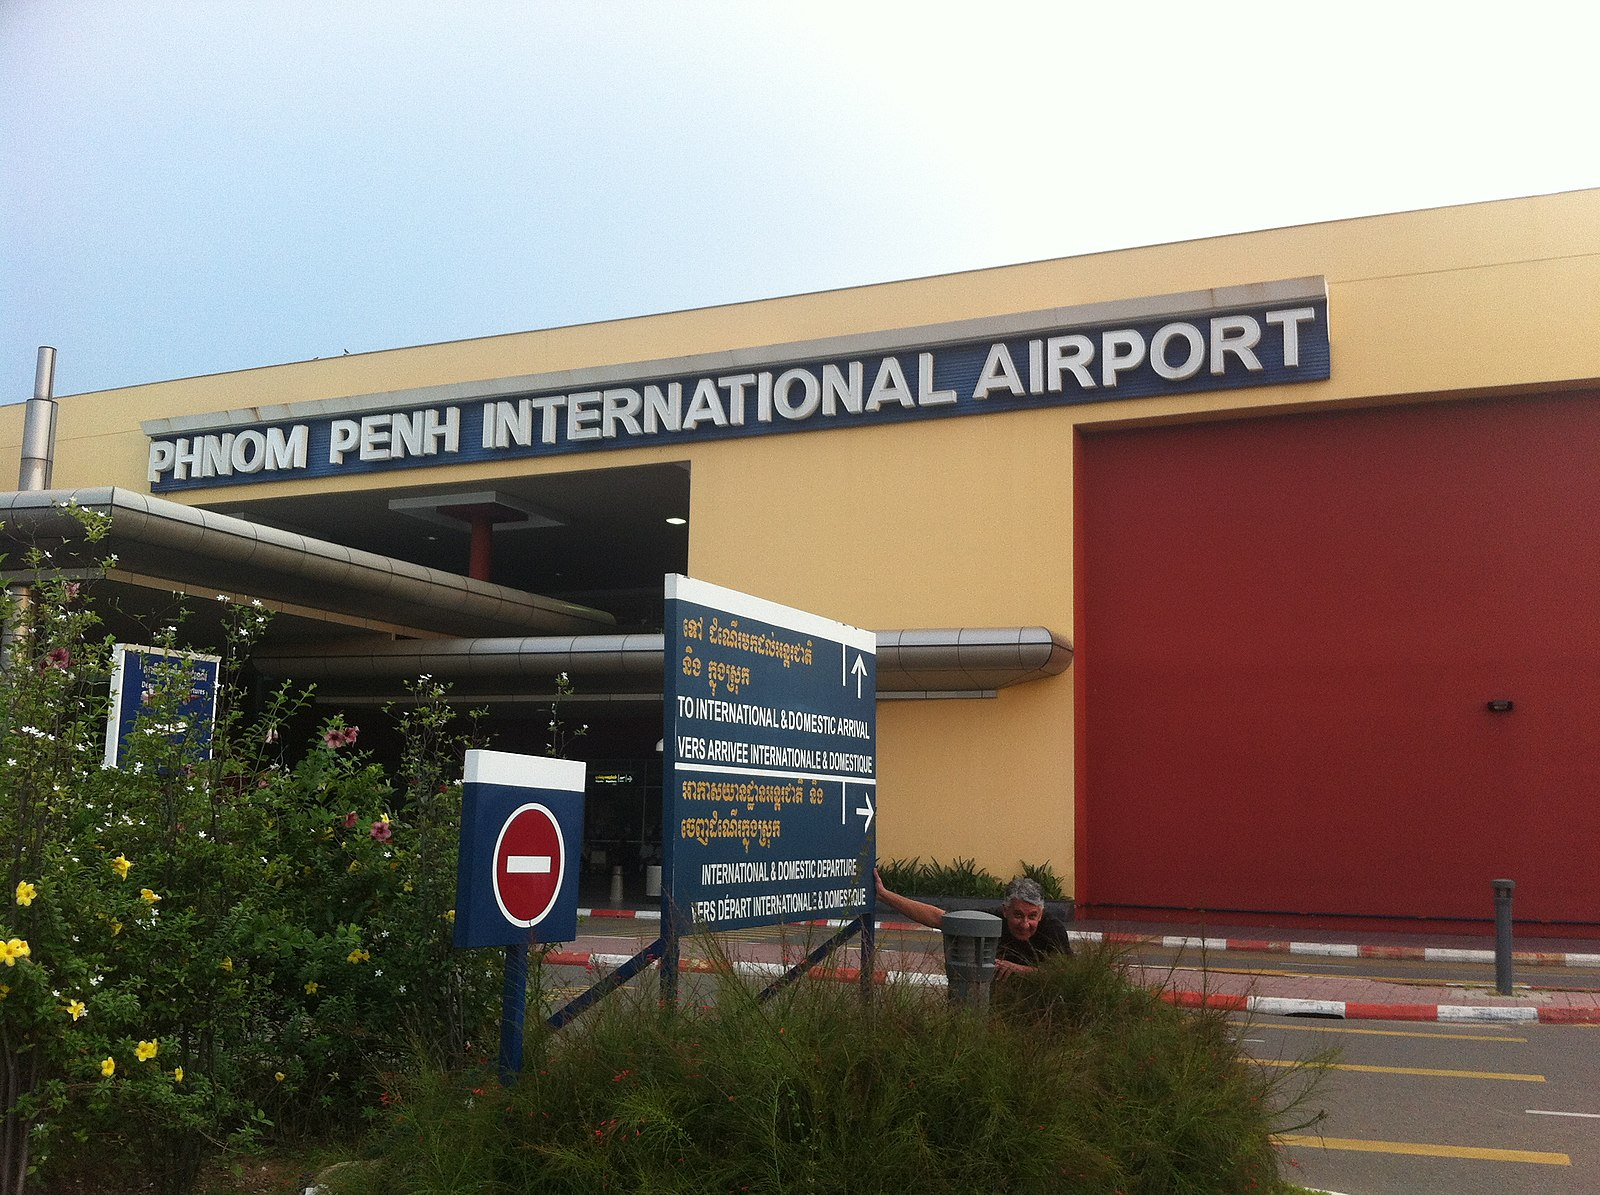 Phnom Penh International Airport serves Cambodia and its capital, Phnom Penh.